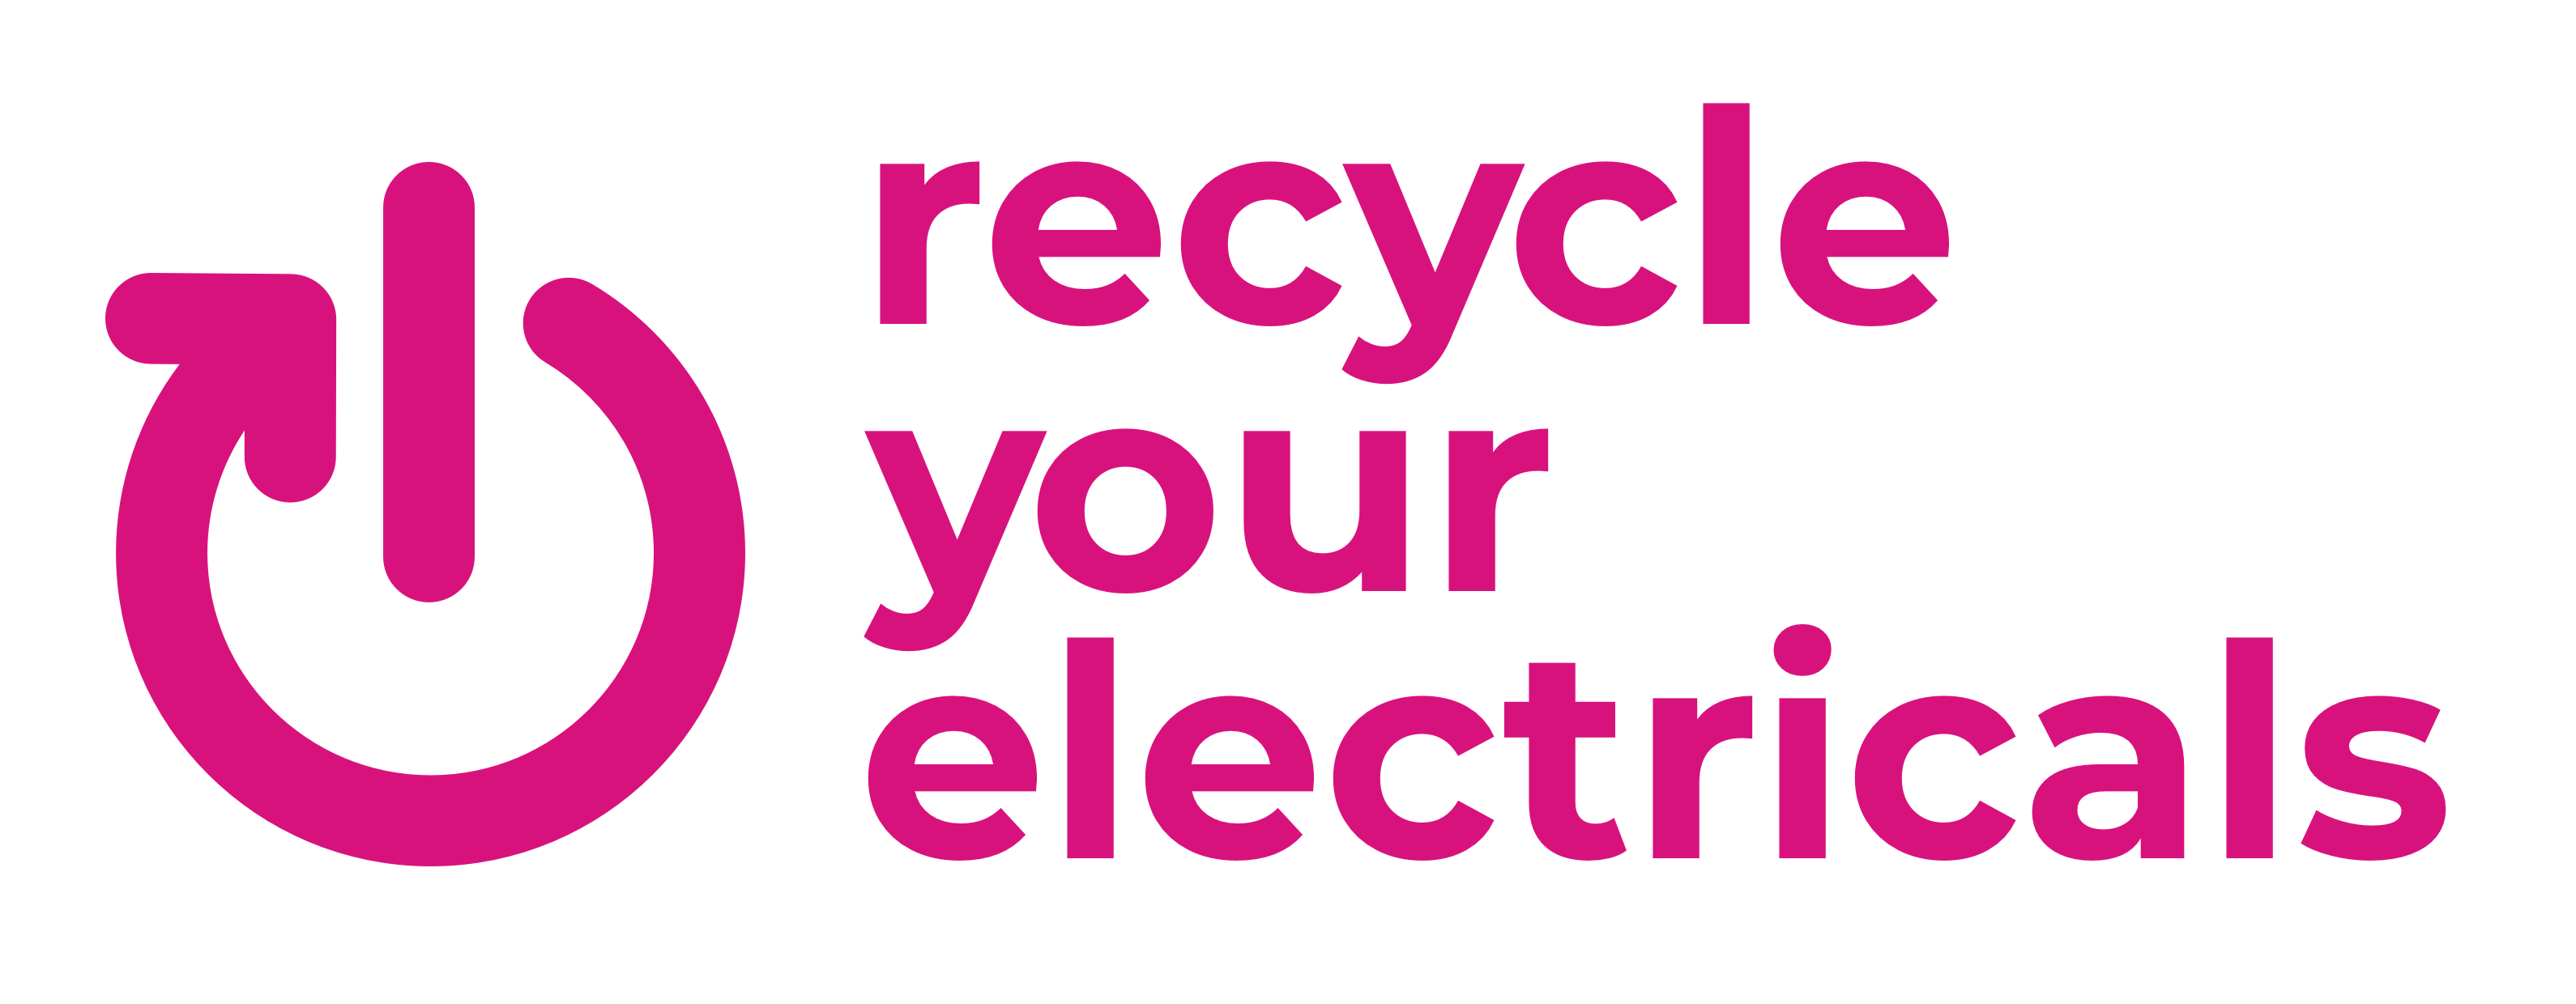 Recycle your electrical